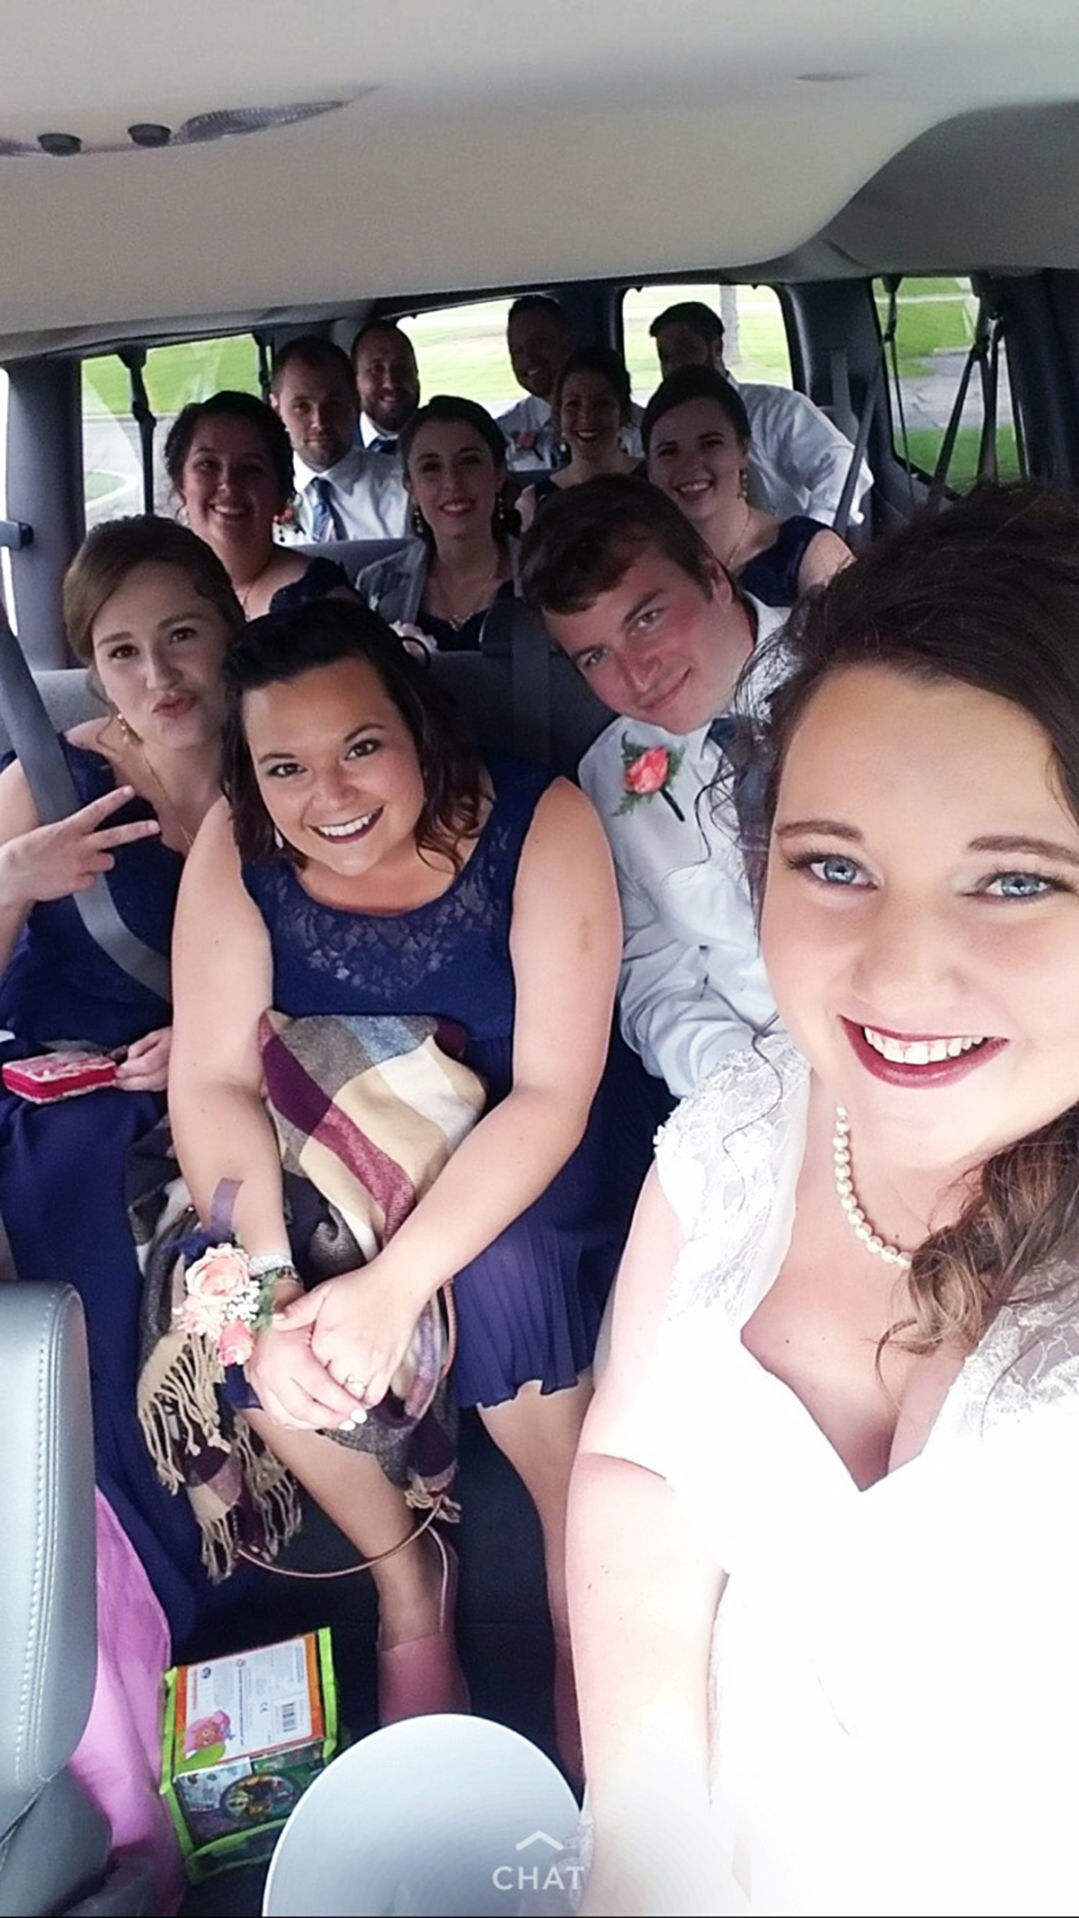 Zeman wedding party selfie